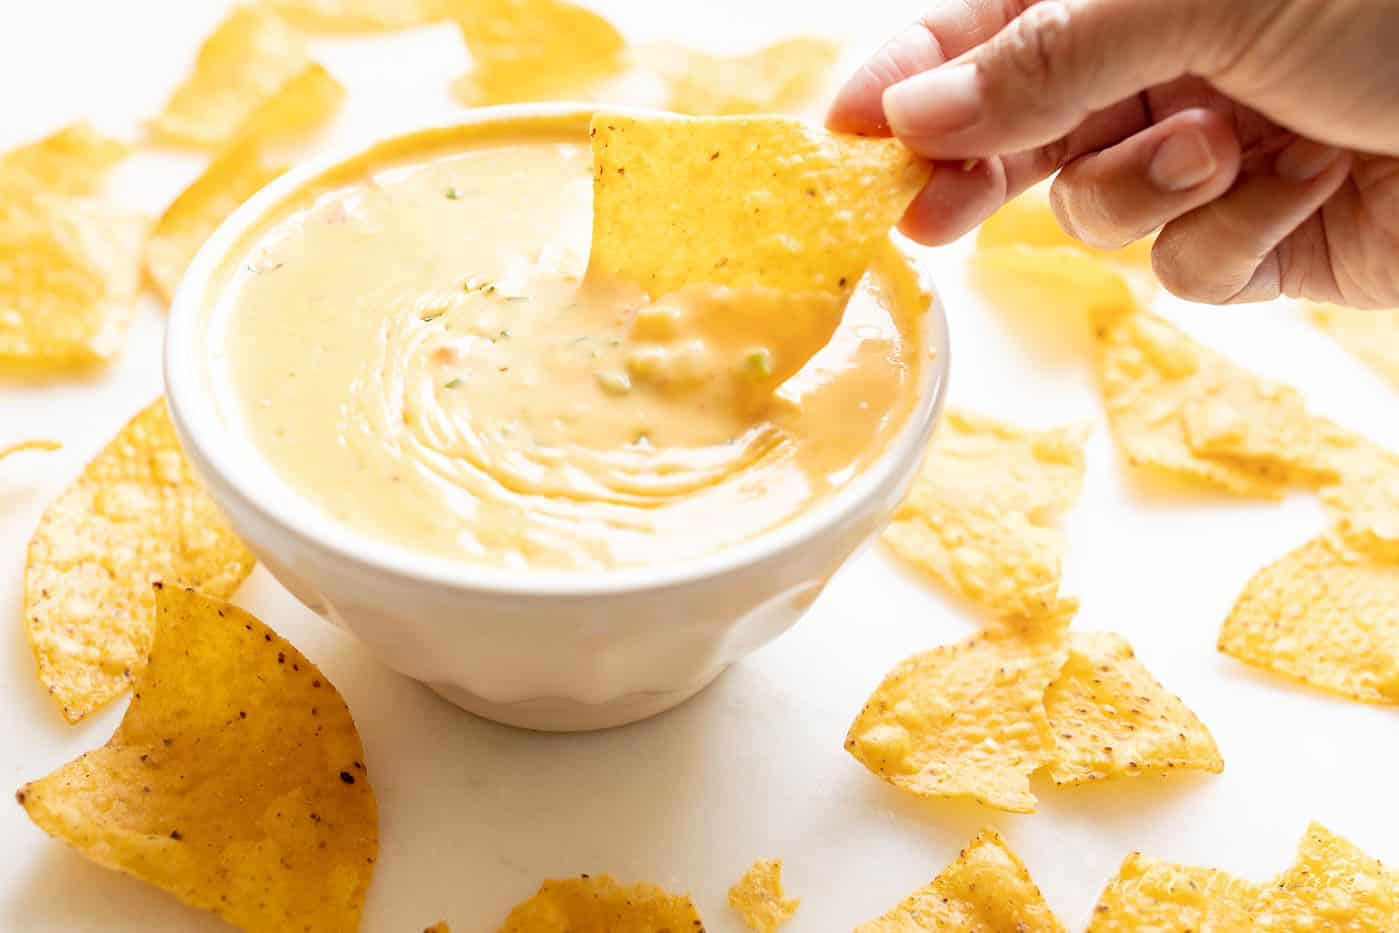 A hand reaching into a bowl full of Velveeta cheese dip, chips surrounding the bowl.